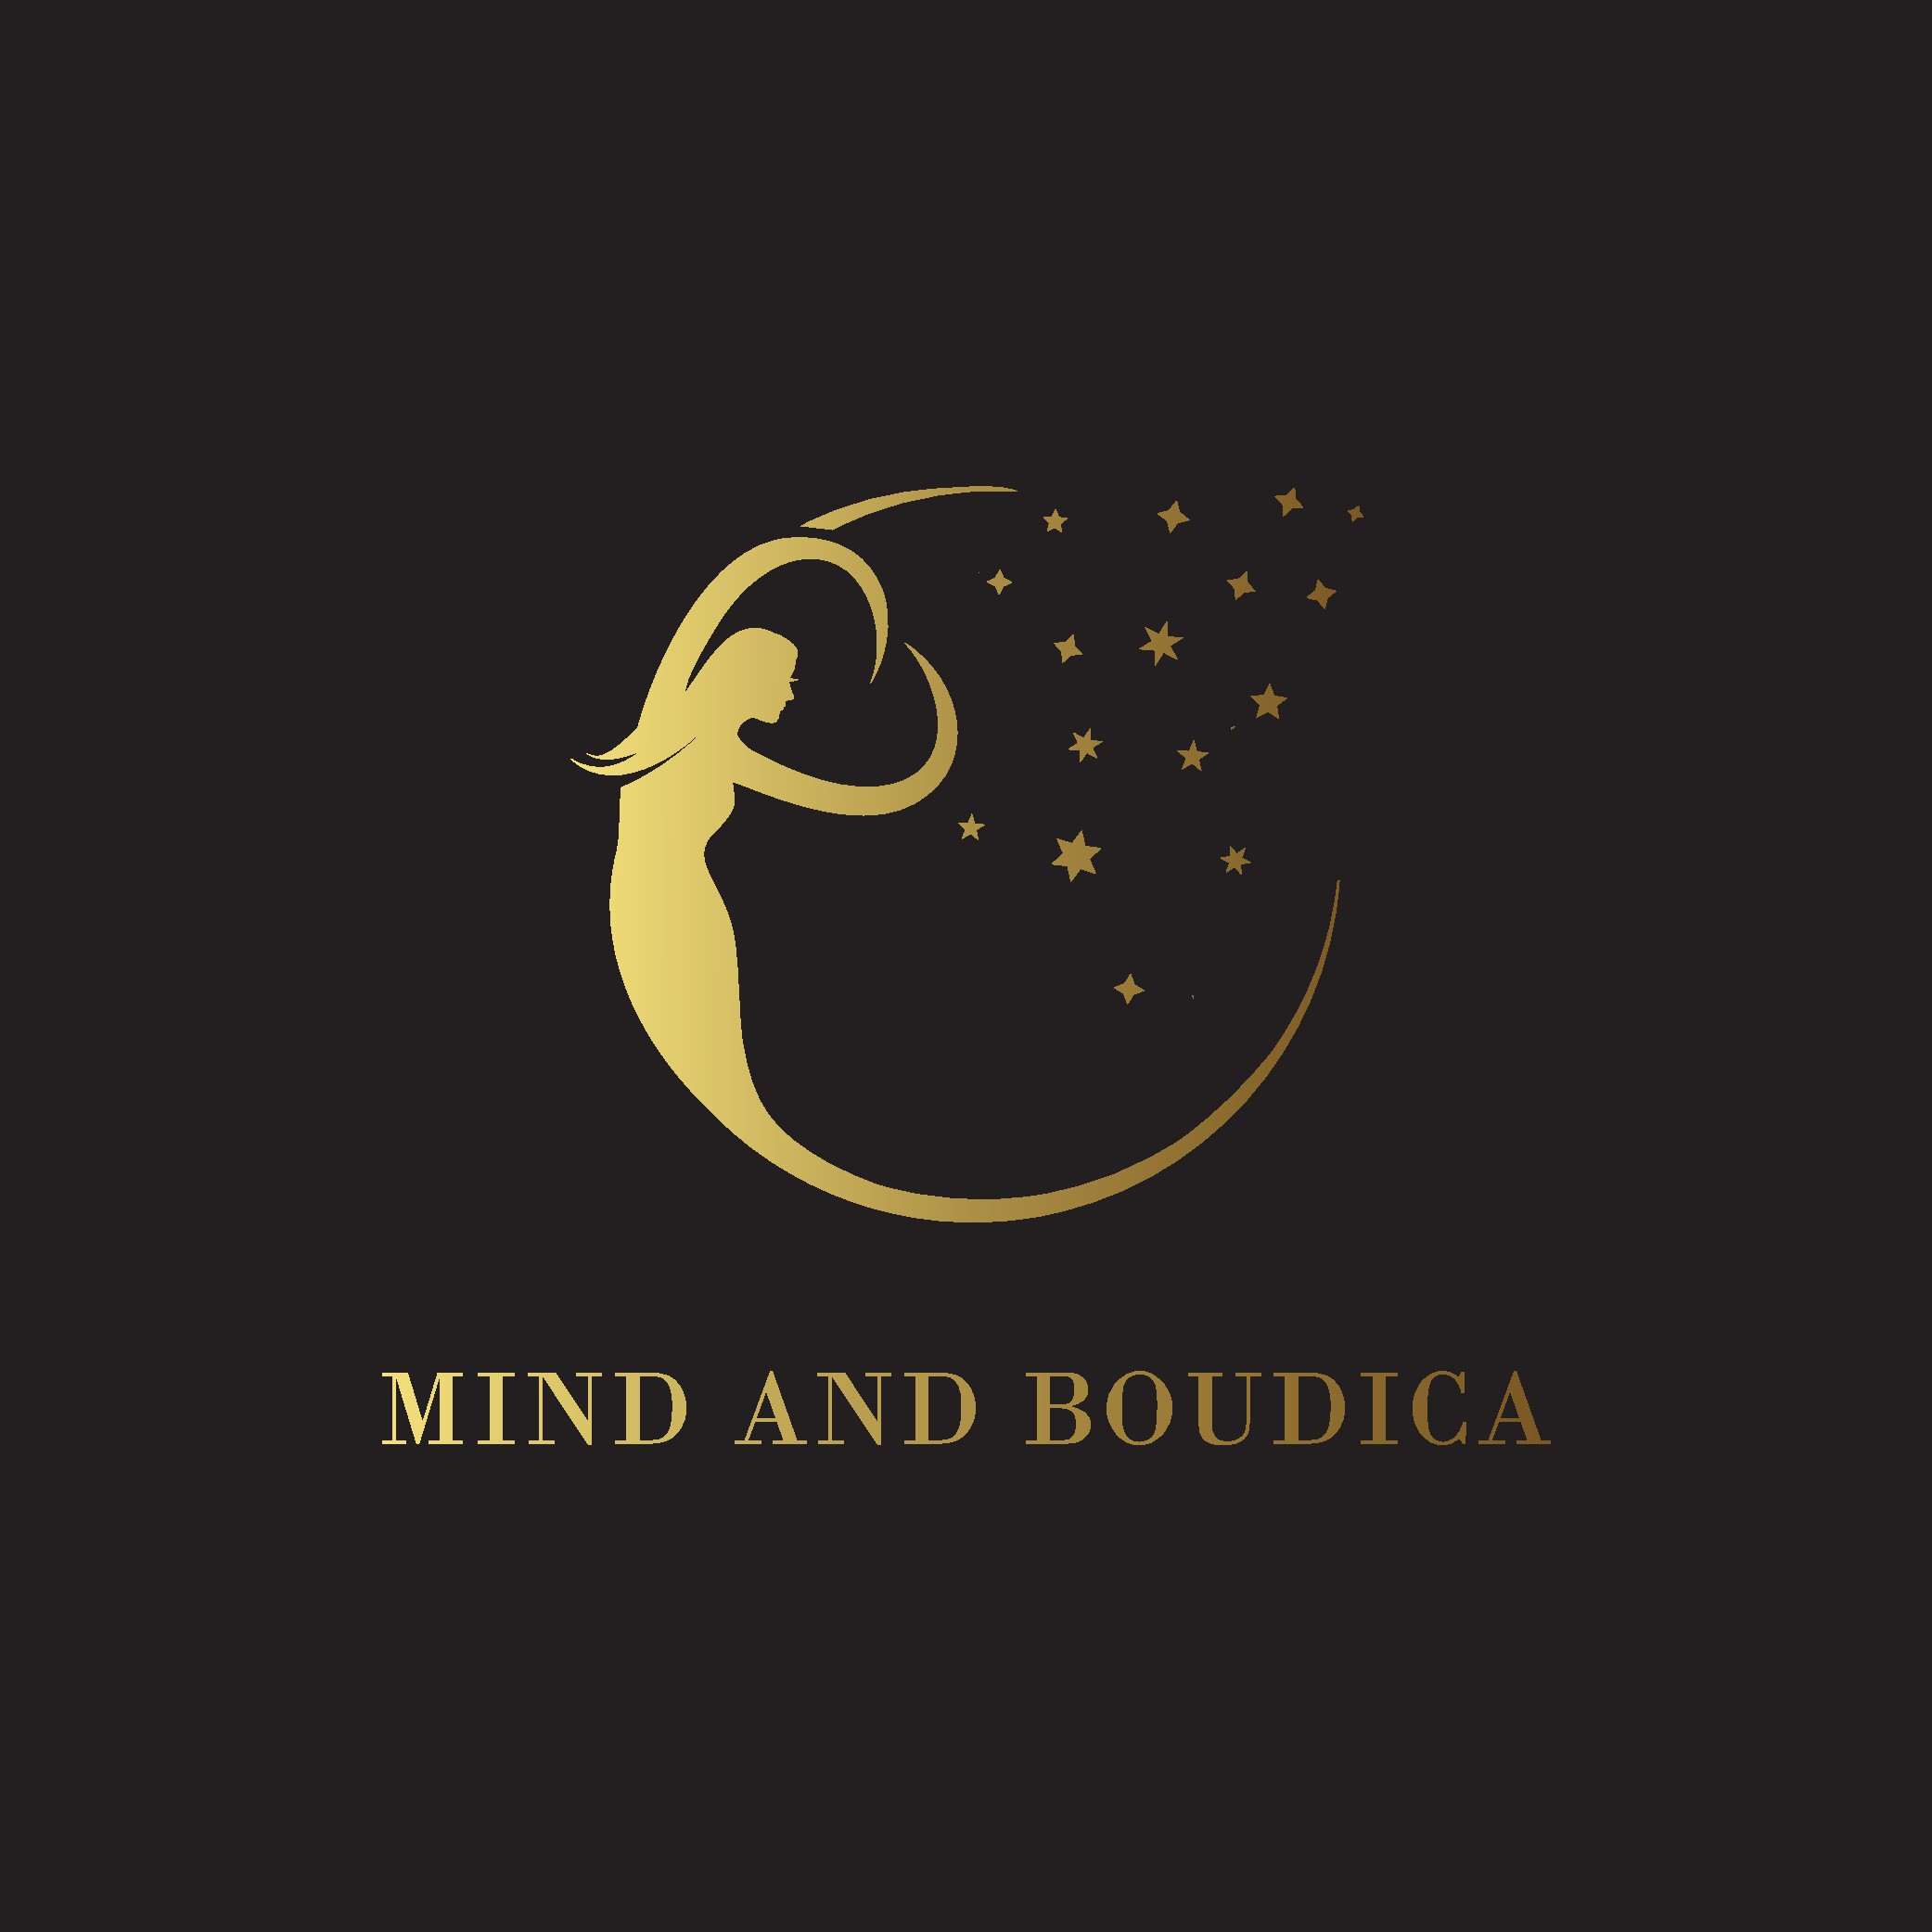 Channel your inner Boudica! I'm looking for a design that reflects her spirit & strength.